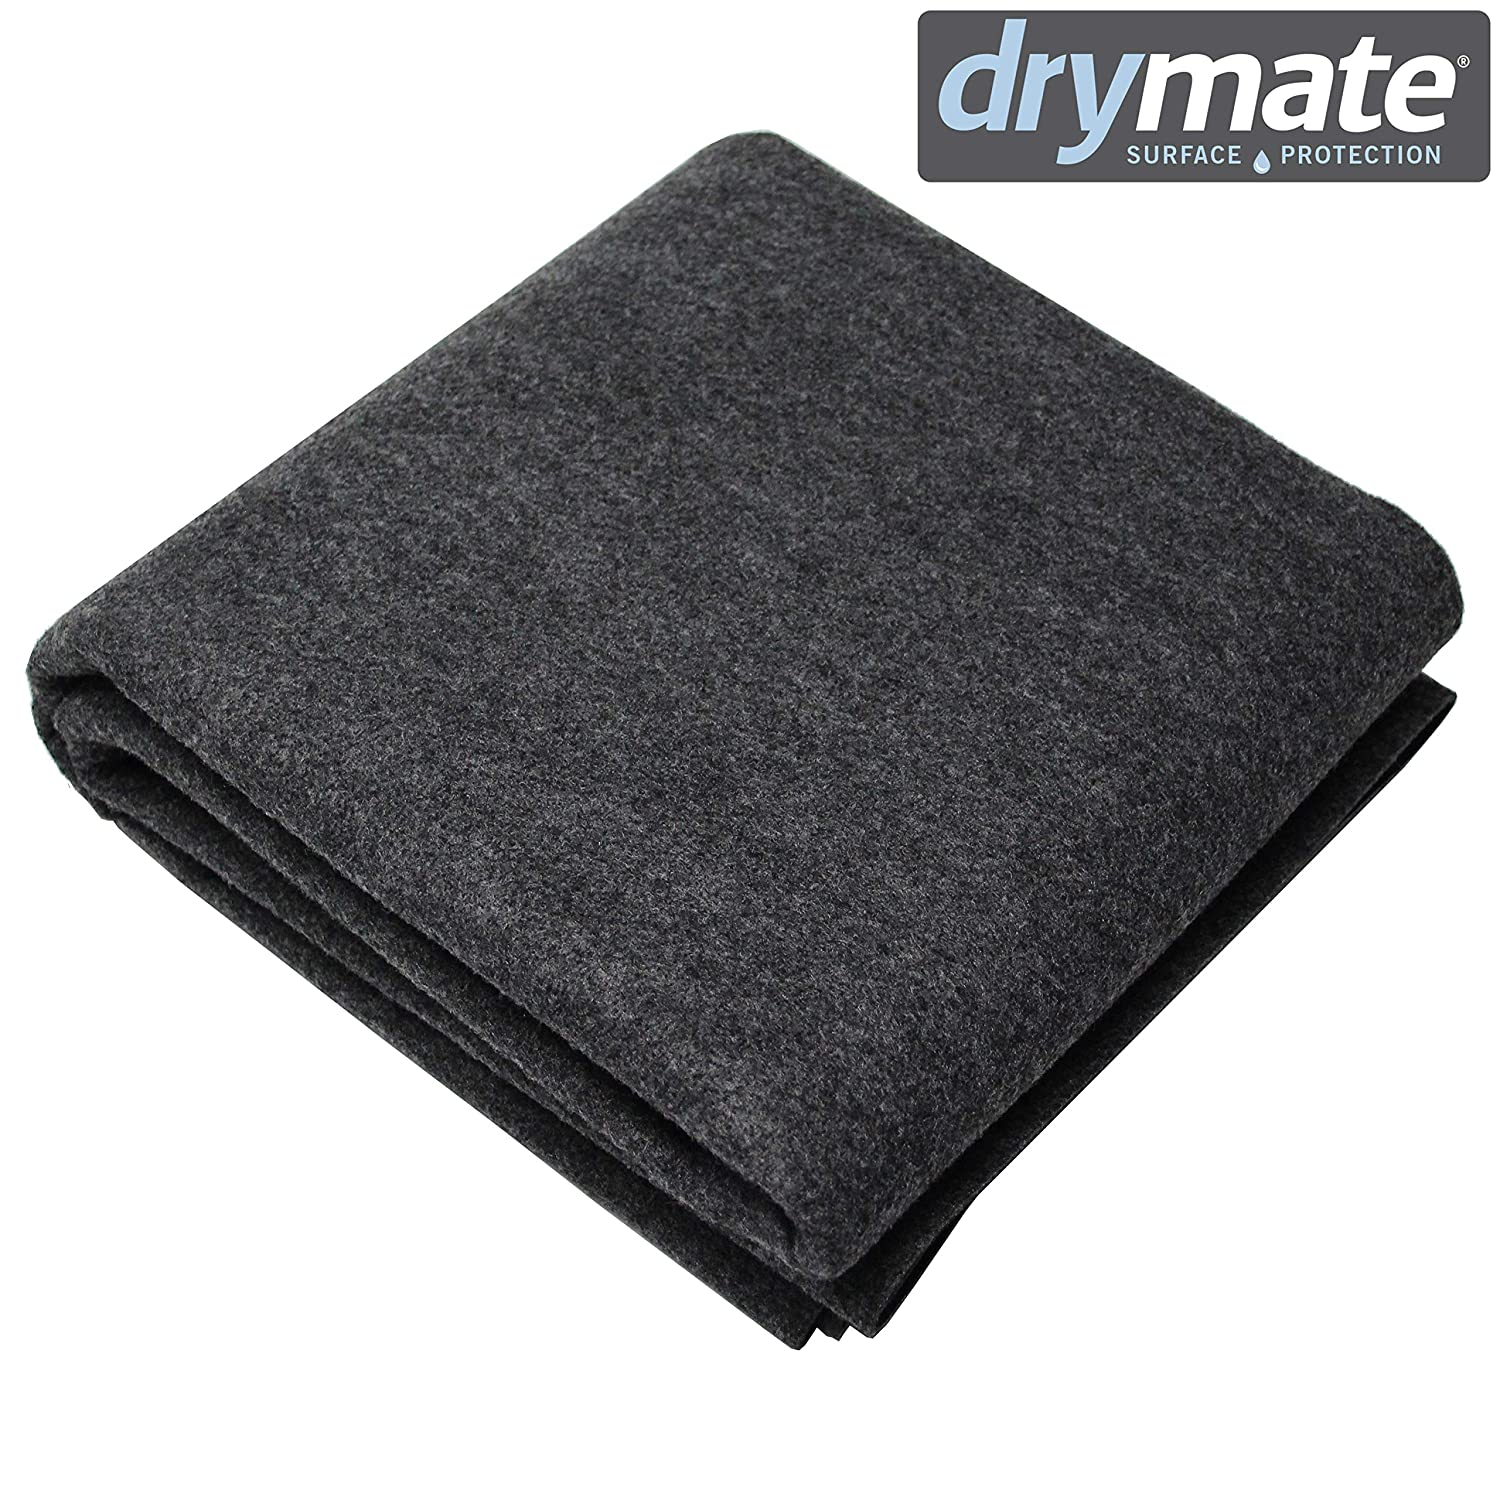 Drymate Whelping Box Liner Mat, Washable and Reusable Puppy Pad, Can Be Cut to Fit, Made in The USA